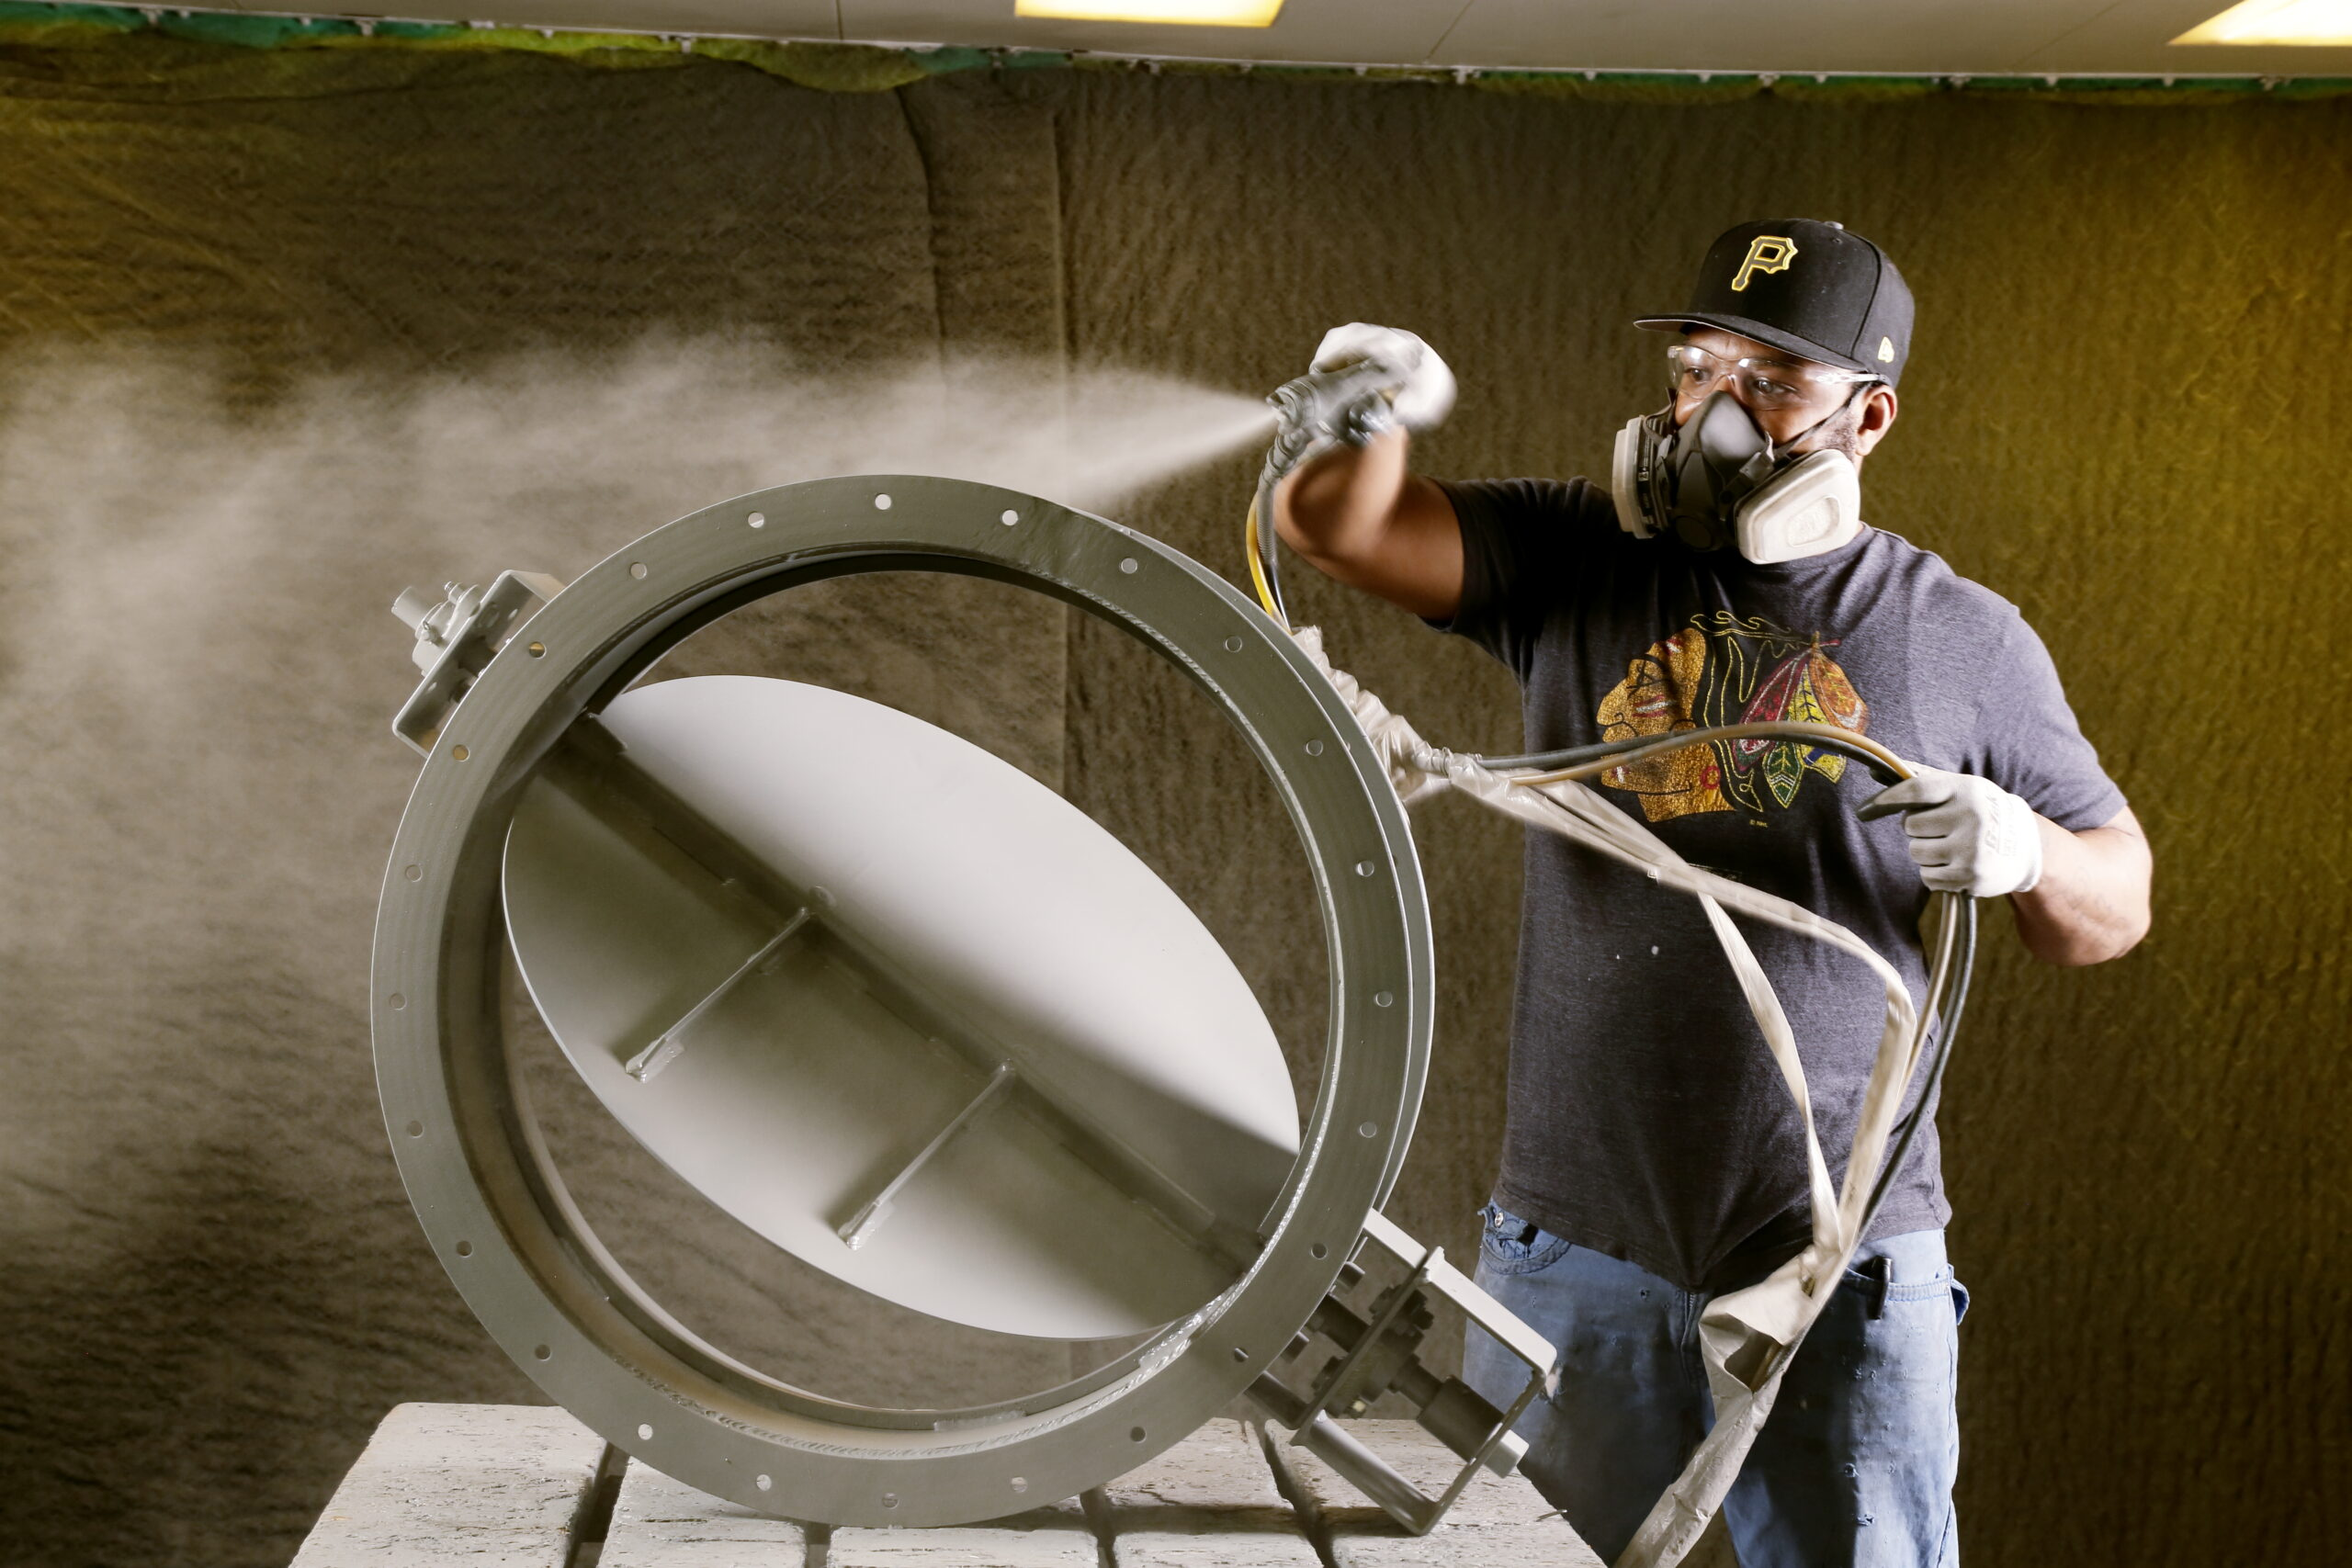 A Kelair shop worker polishing an industrial damper with a finishing product.